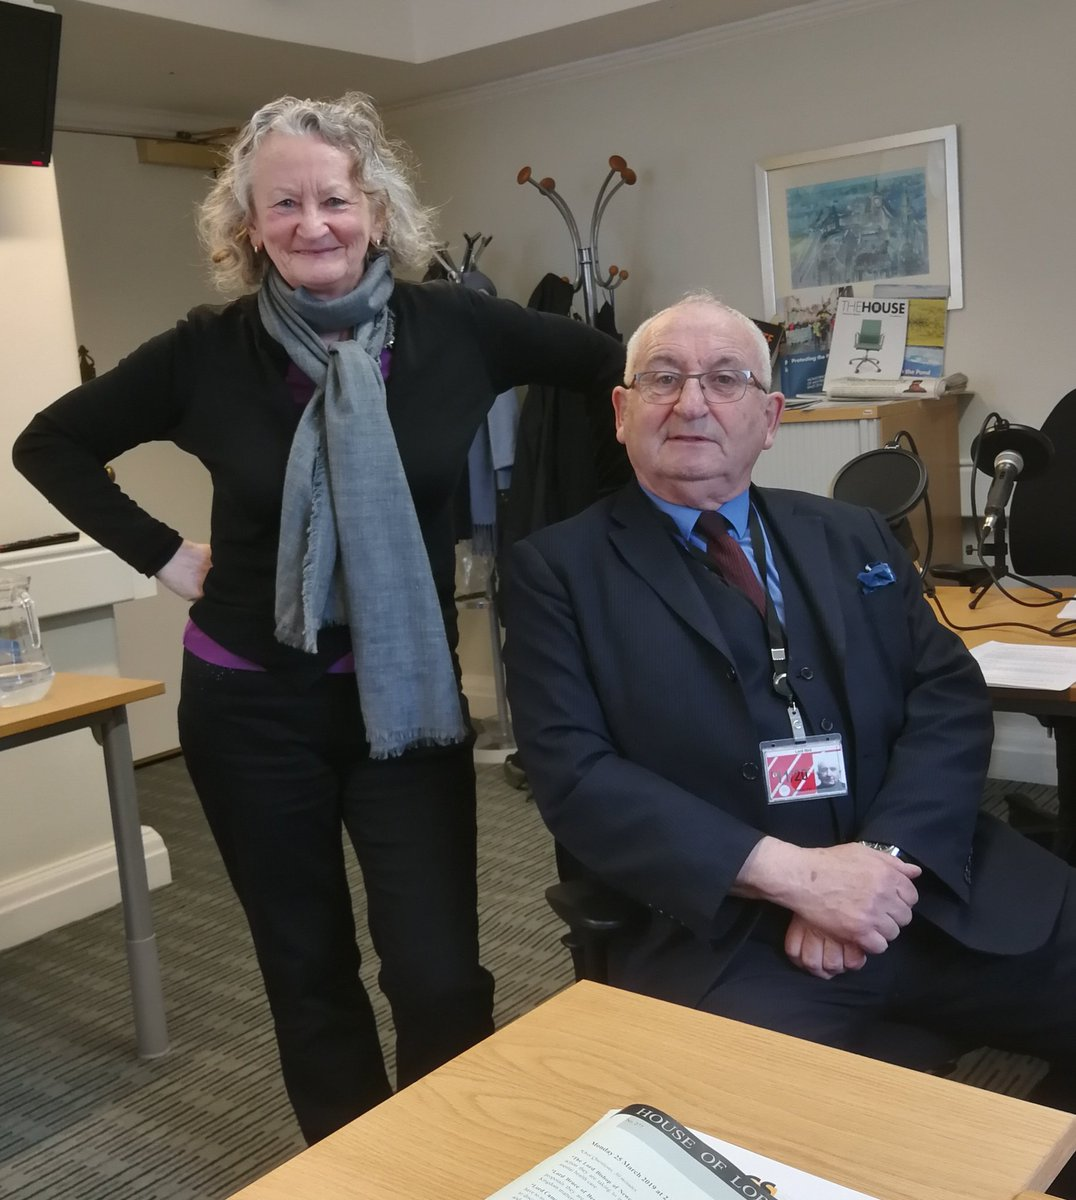 Green Jenny Jones talks to John Bird, founder of the Big Issue and independent peer